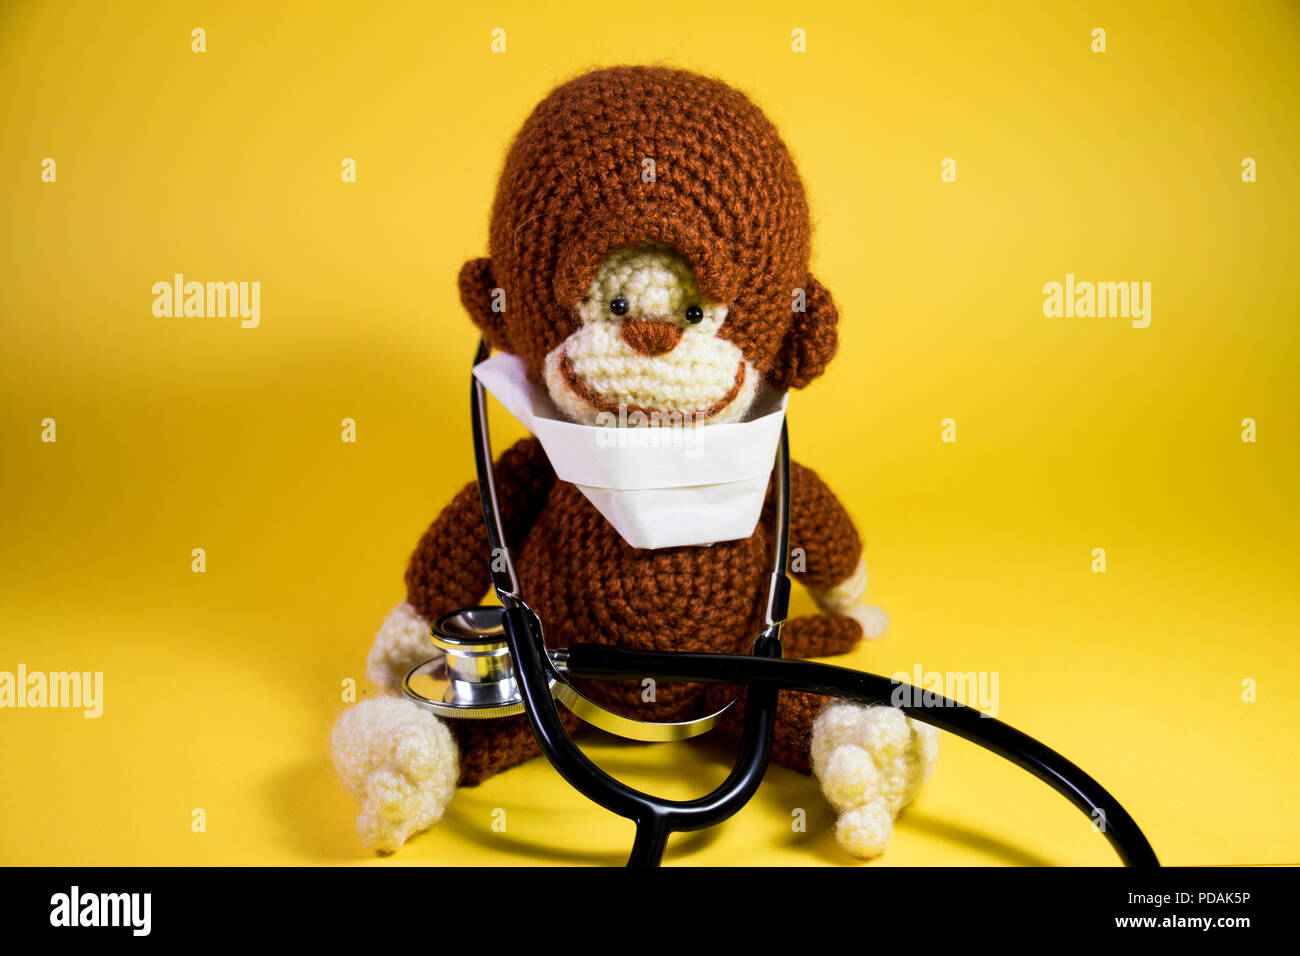 Medical Monkey stuffed toy panoramic. Cute plush brown monkey wearing a hospital mask and doctors stethoscope. - Stock Image